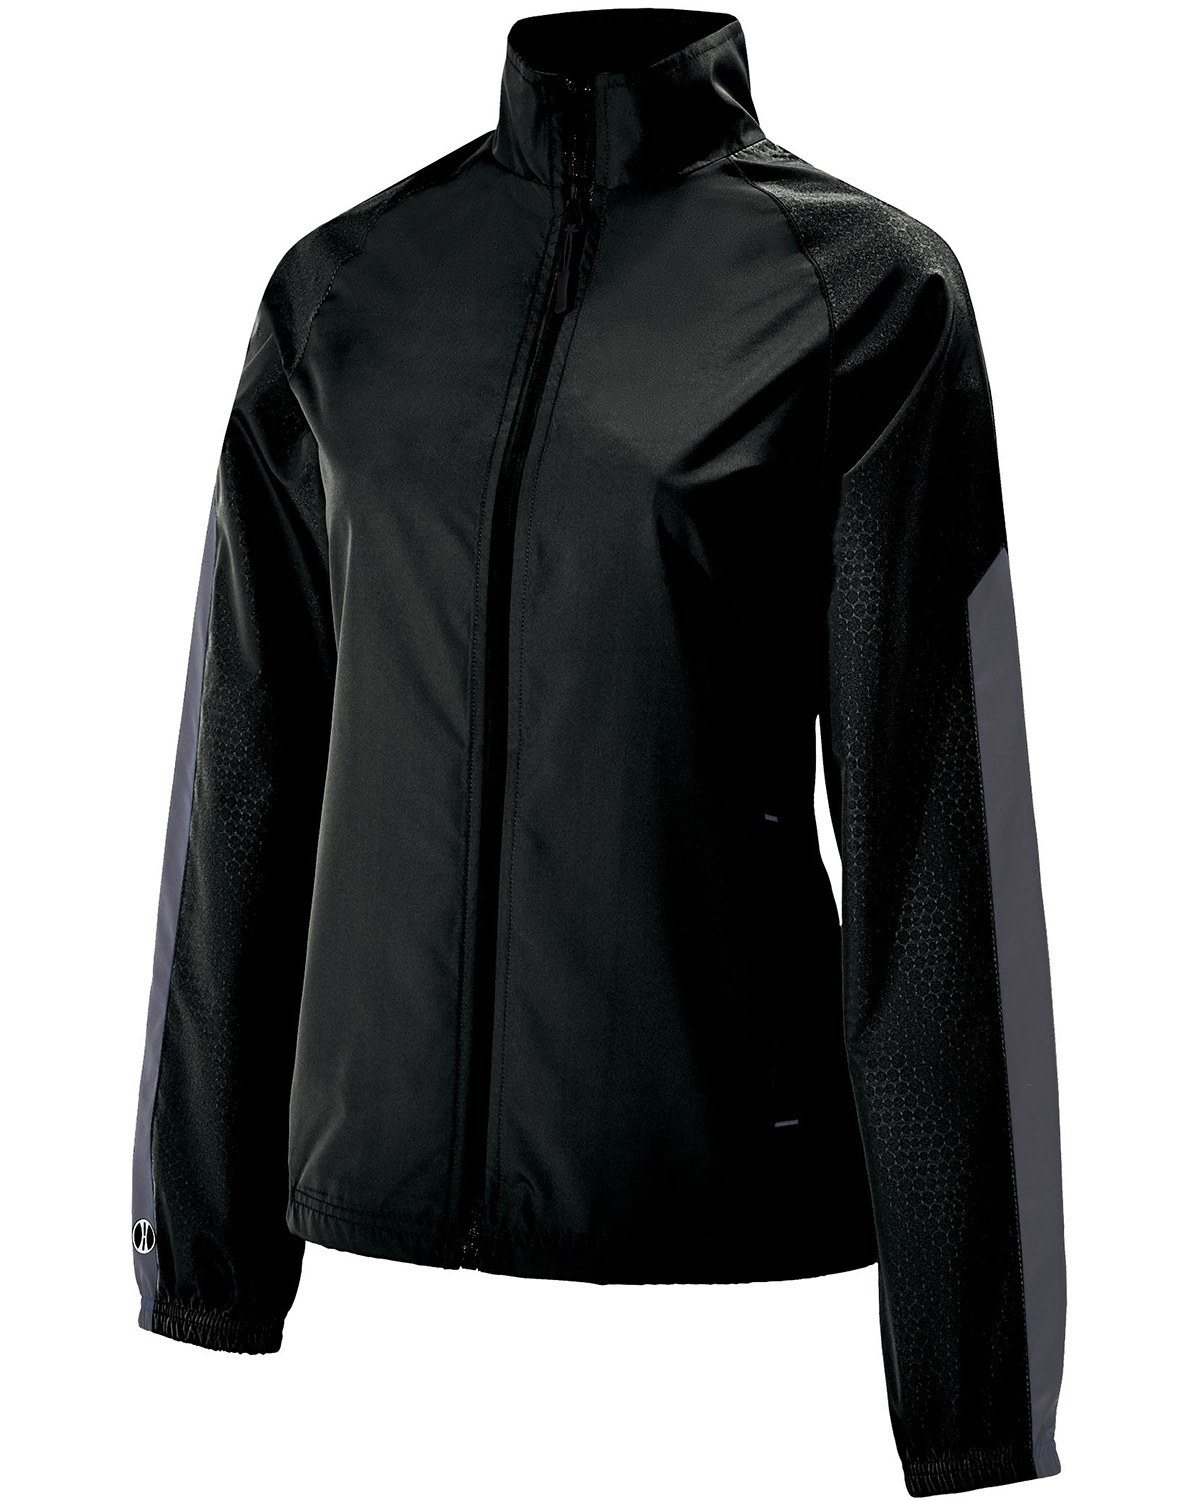 Holloway 222312 - Ladies' Polyester Bionic Jacket